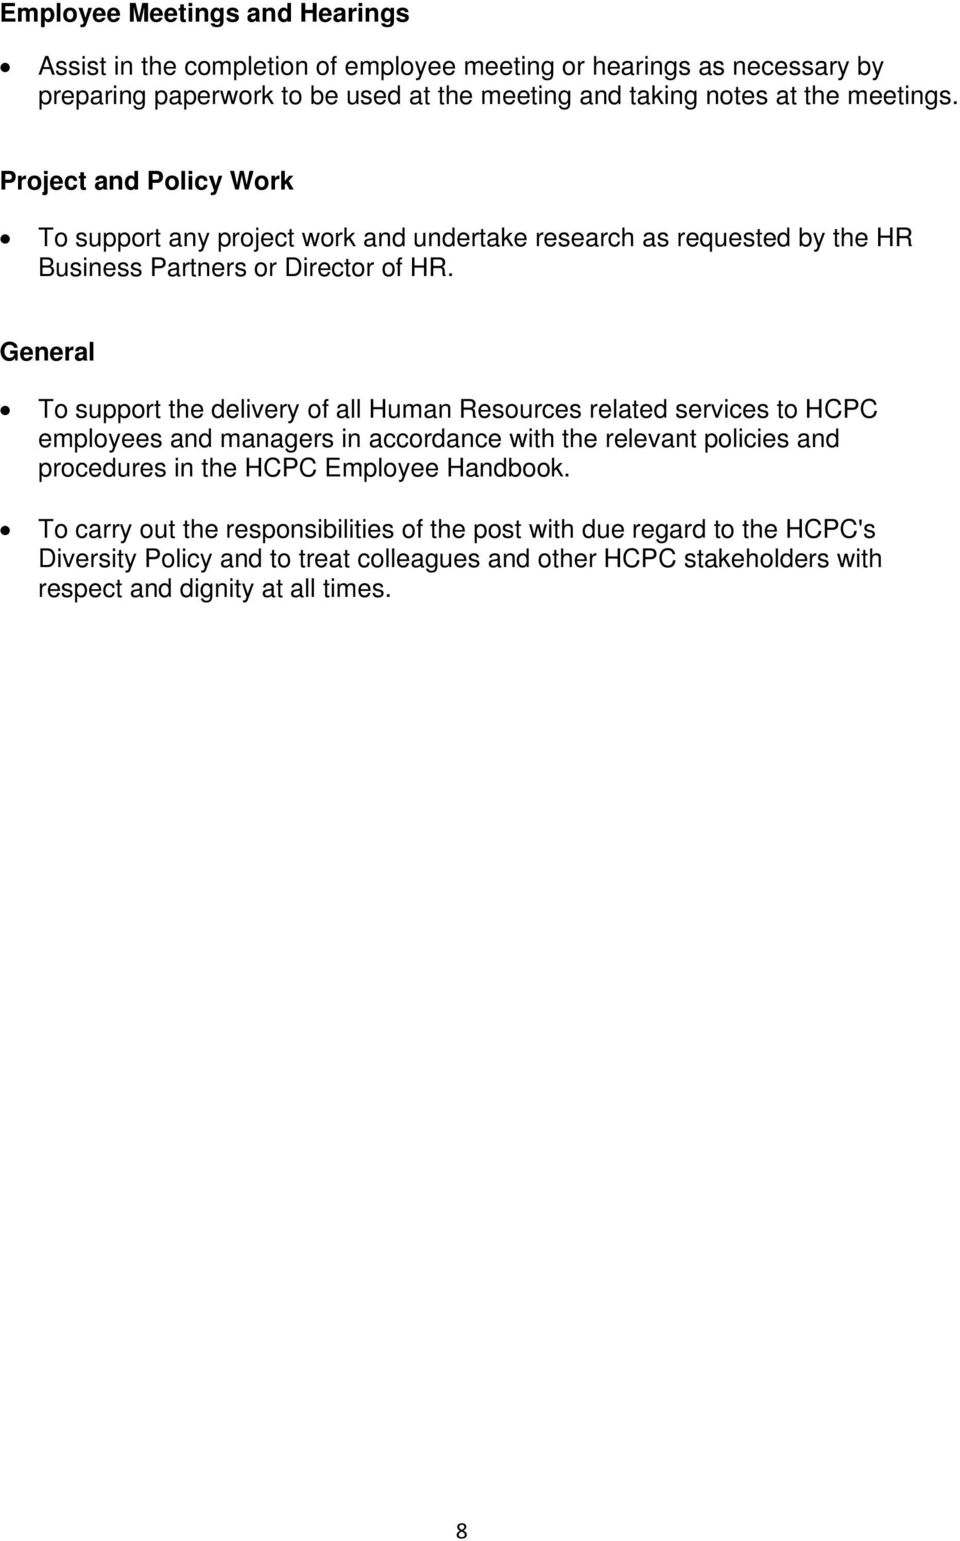 General To support the delivery of all Human Resources related services to HCPC employees and managers in accordance with the relevant policies and procedures in the HCPC